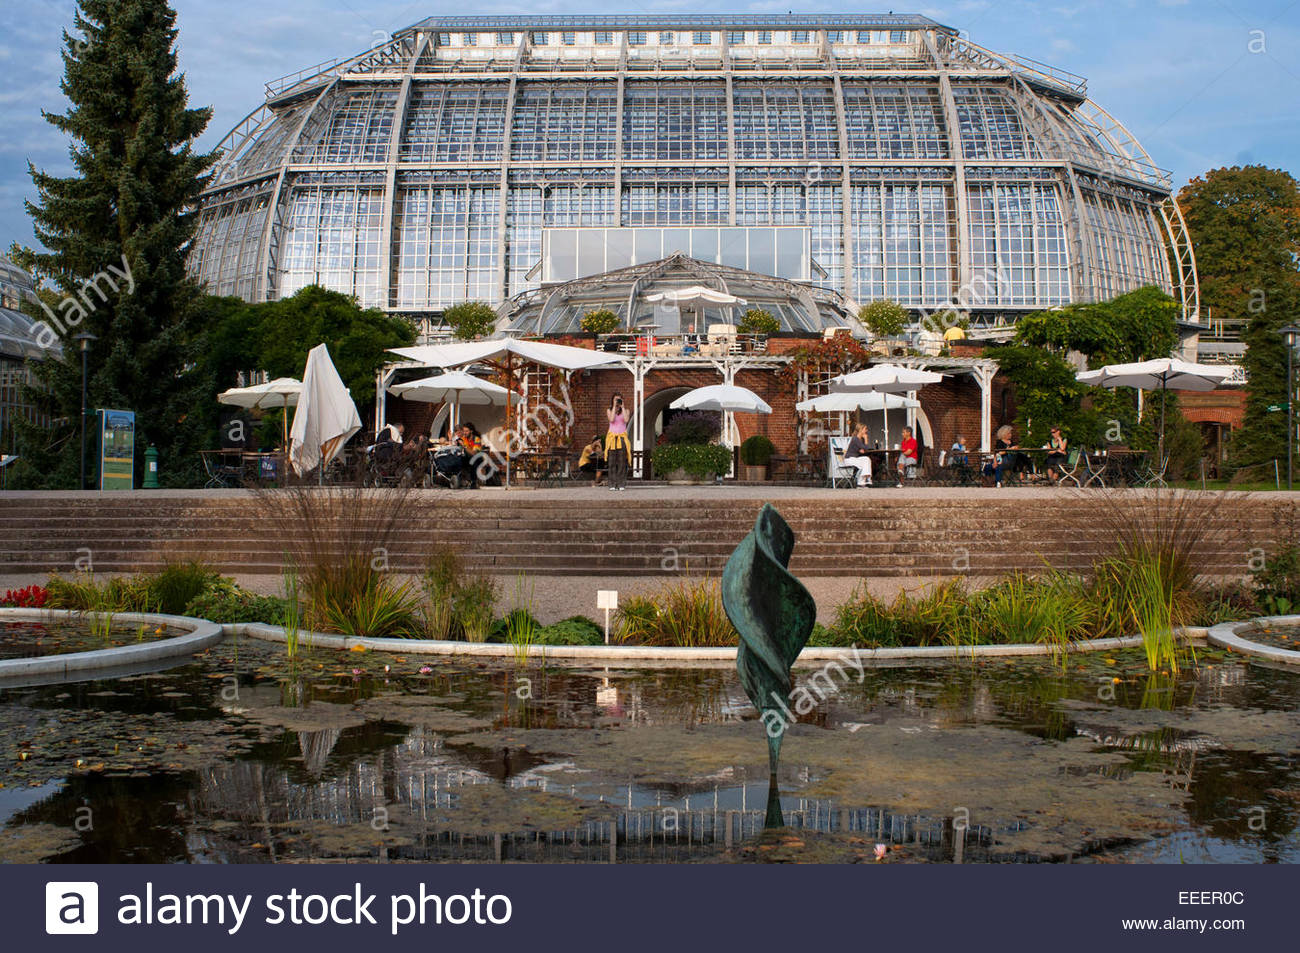 Botanical Garden Berlin, with more than 43 ha the greatest botanical garden in Europe. The main tropical greenhouse. - Stock Image